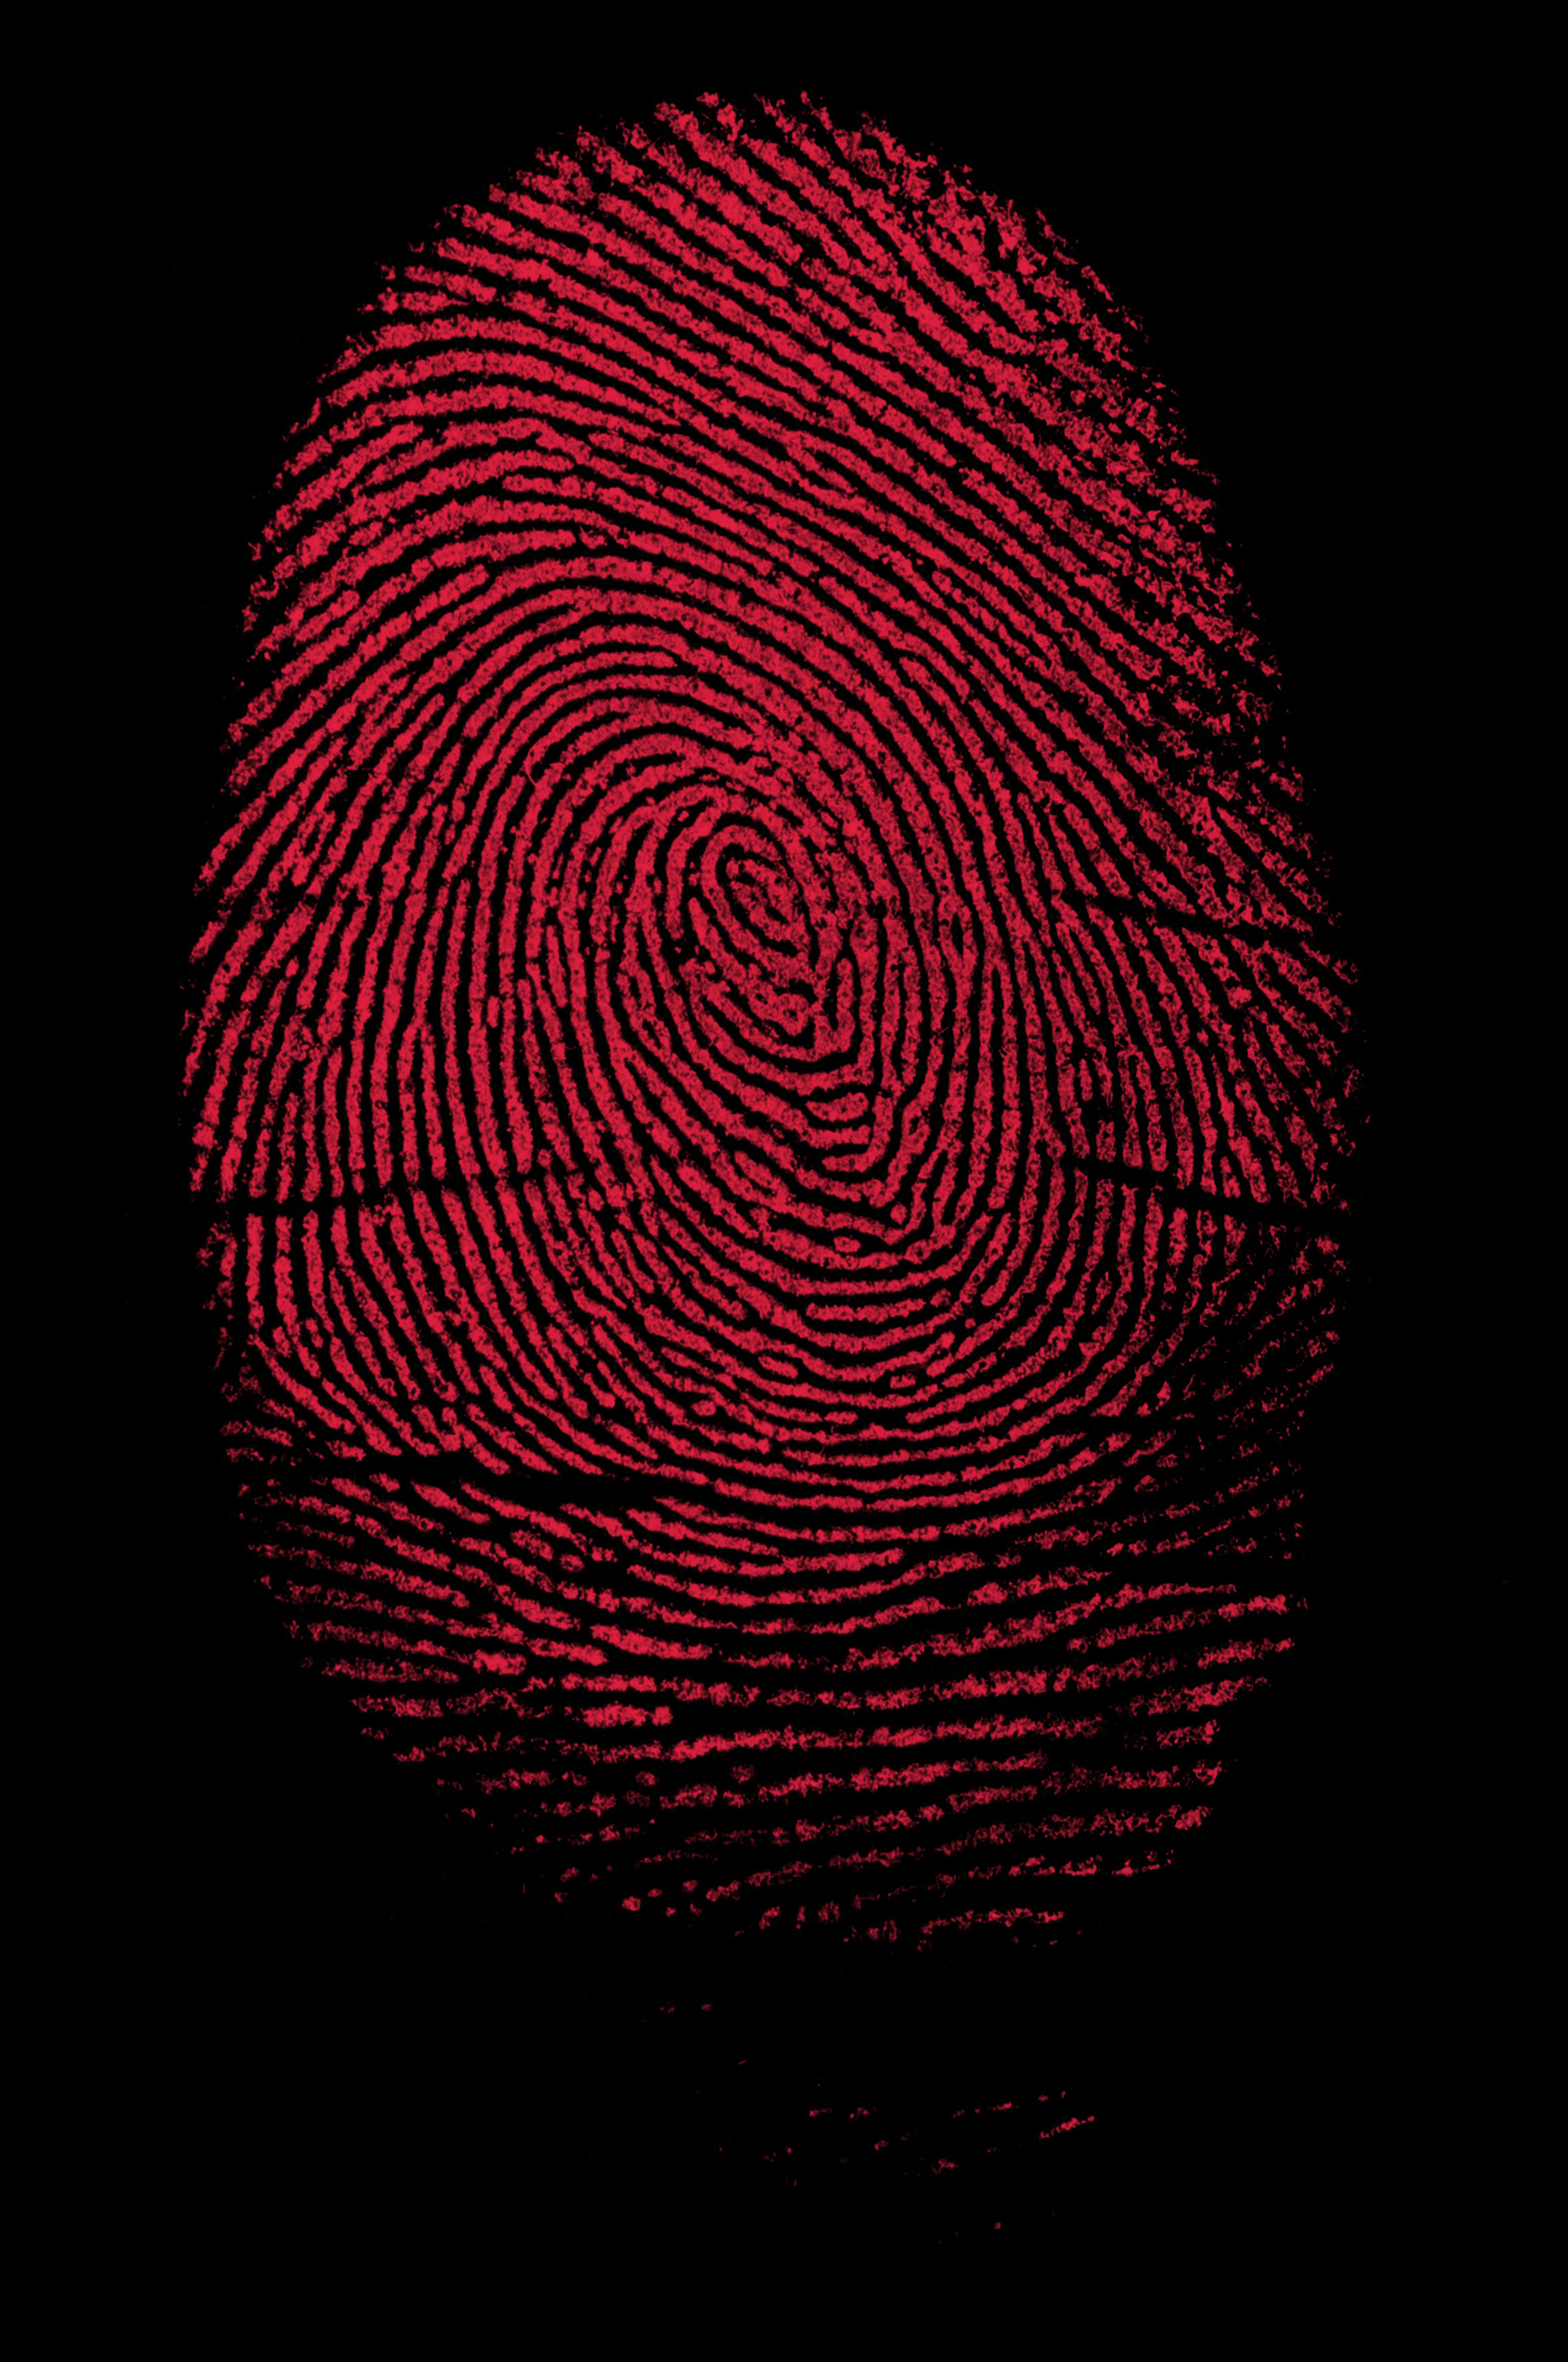 Biometric authentication is being billed as a better, safer alternative to passwords and pass codes